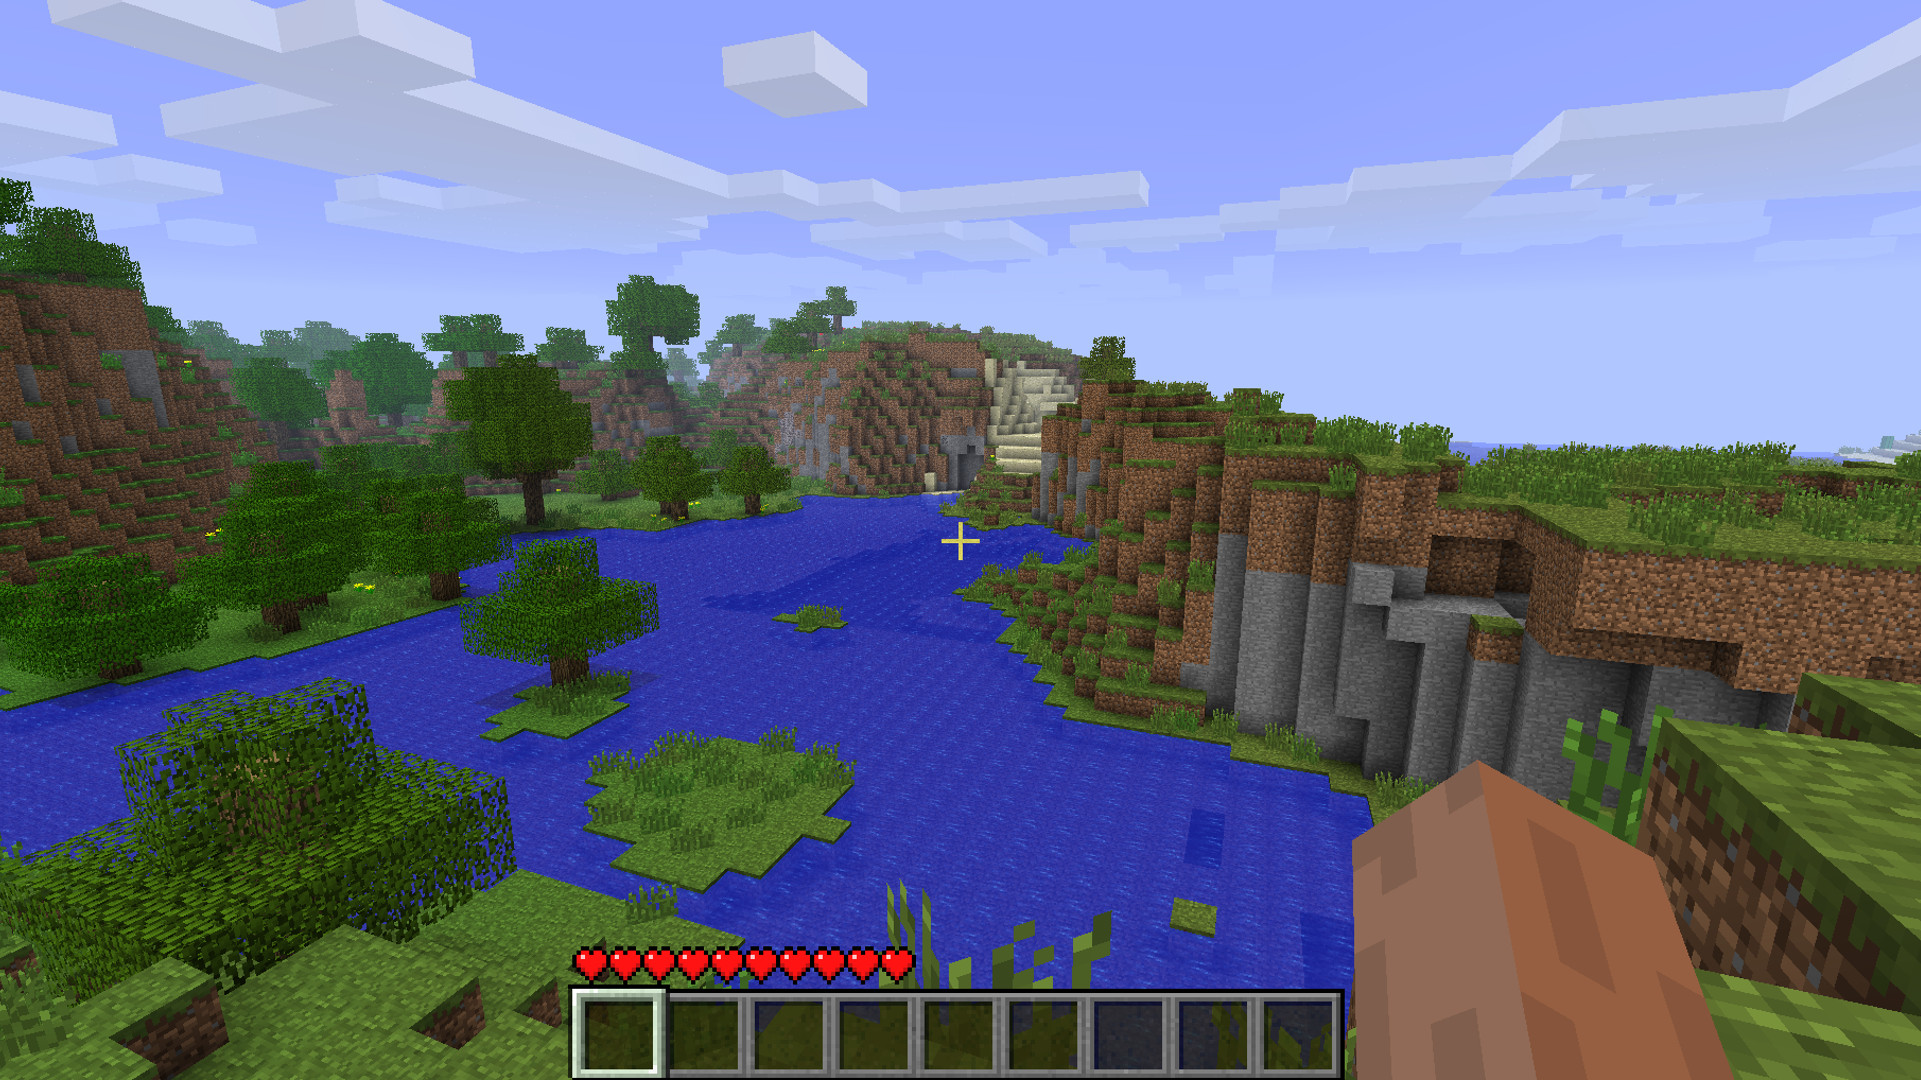 Minecraft title screen seed – You can now visit the panorama from